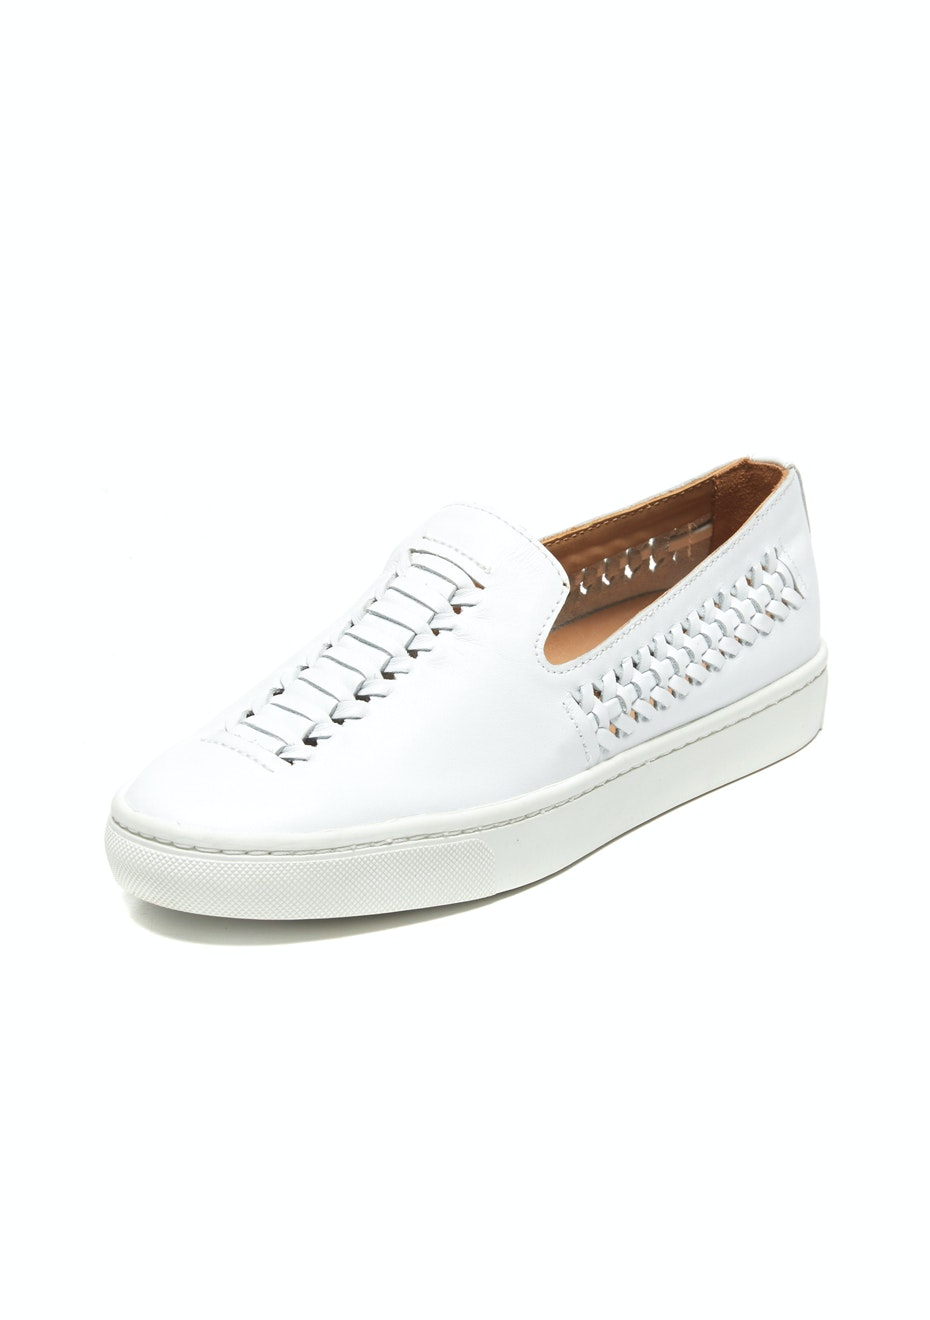 Soludos - Woven Sneaker - Ivory